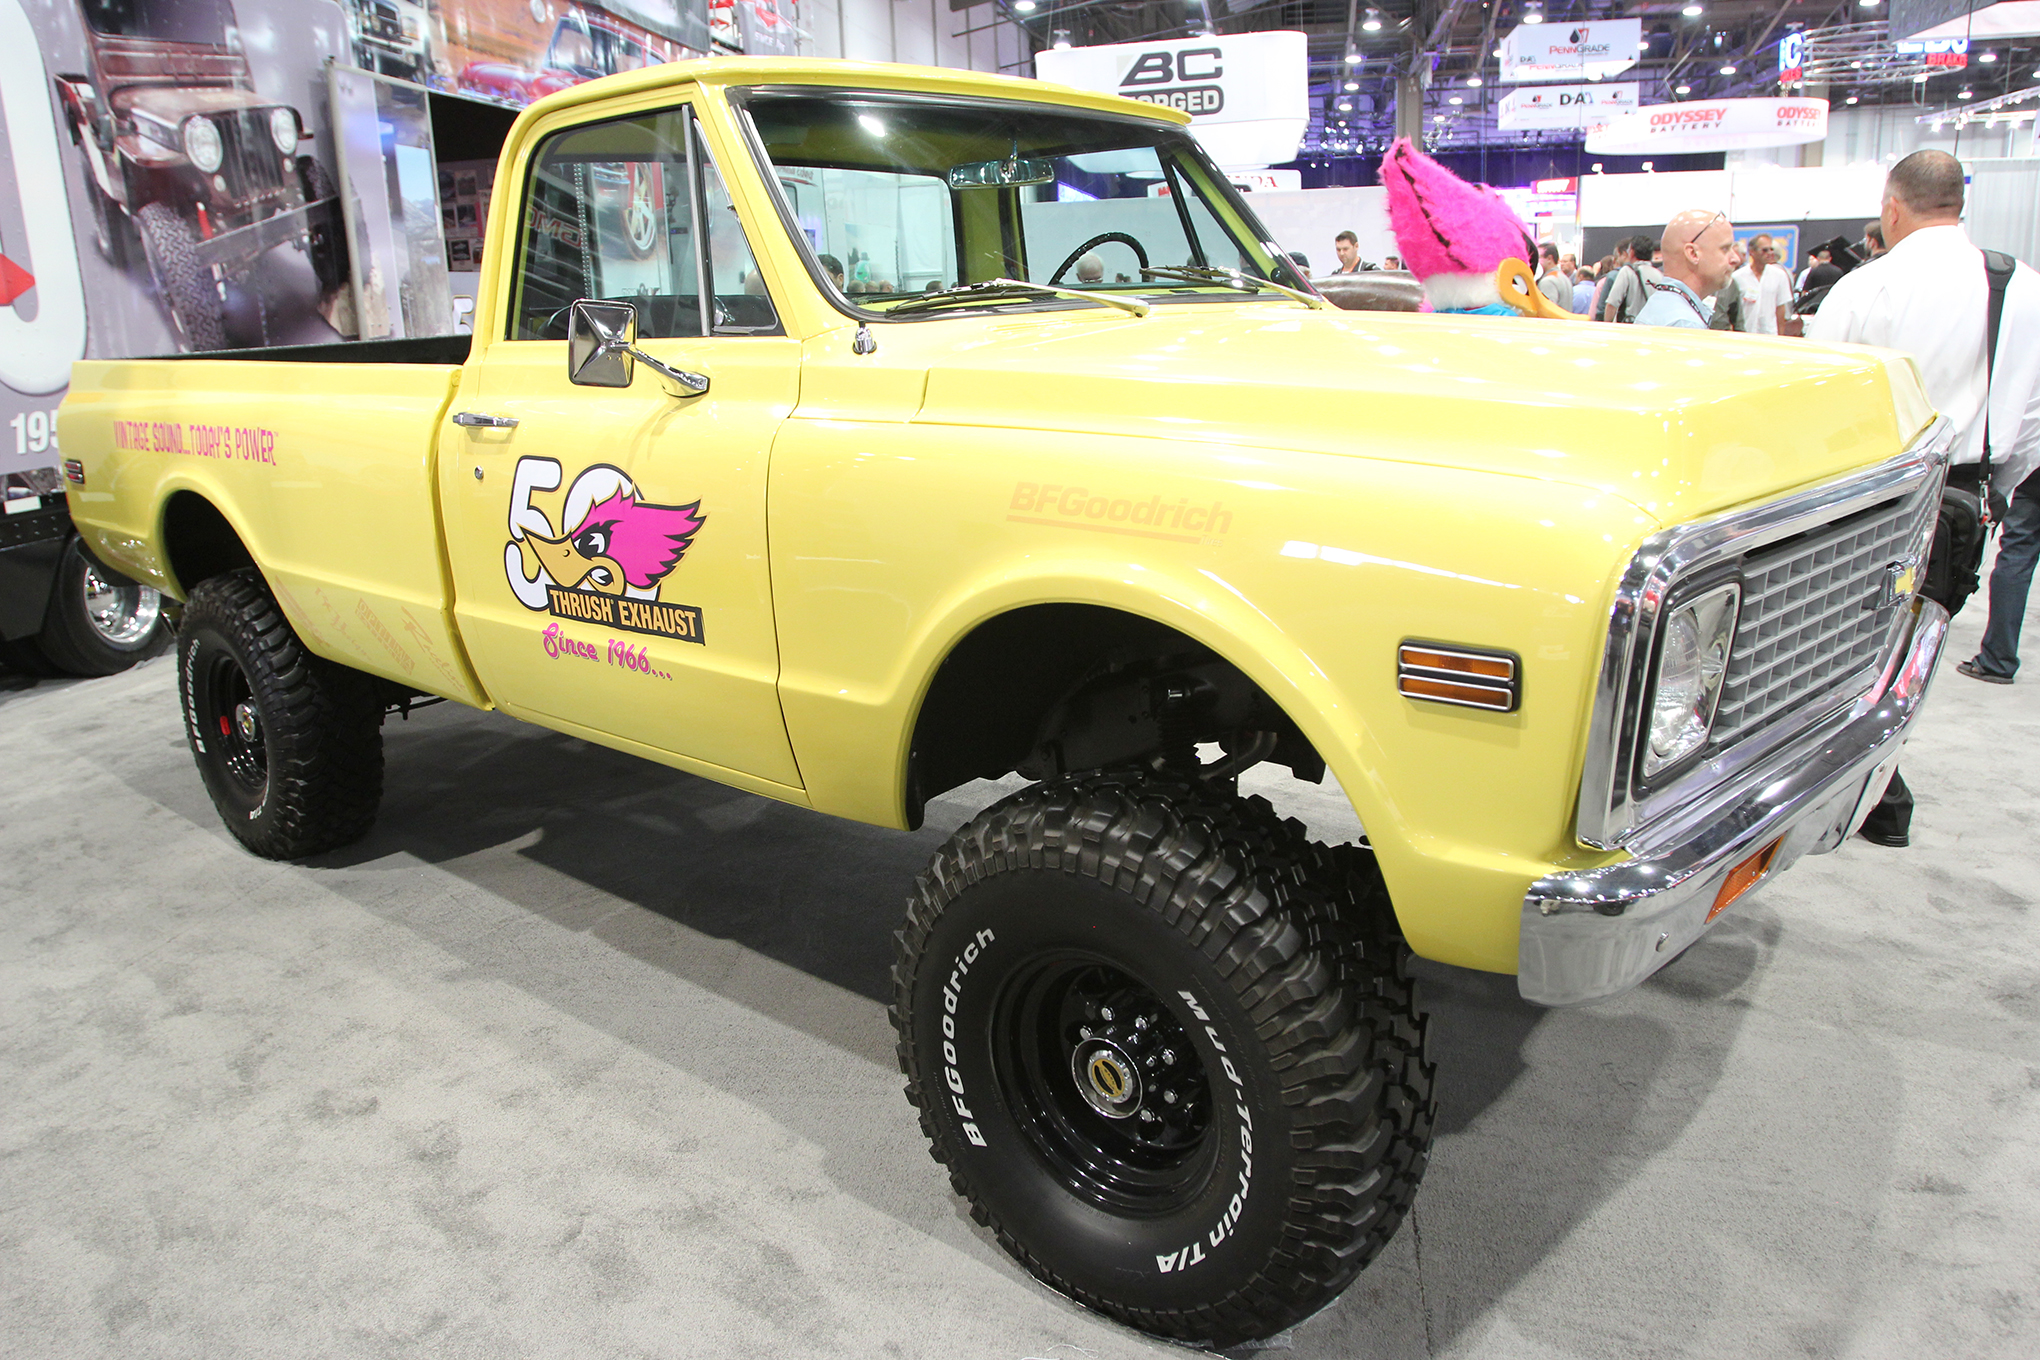 There are several really nice old GM trucks of this vintage at the 2015 SEMA Show, but there was just something about this '72 K20 owned by Dean Bulloch that sucked us in. The truck has a great story. It was given to Dean by his father-in-law, and Dean has meticulously maintained the truck. Among other features the rig has a 396ci big-block engine with a 250hp shot of nitrous.